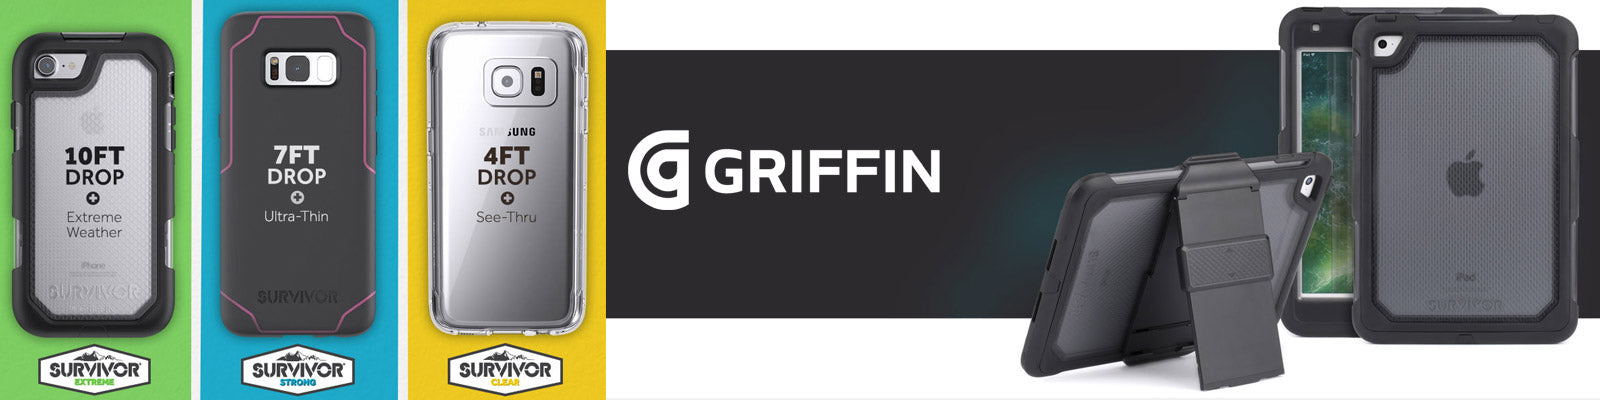 Griffin Australia case and accessories